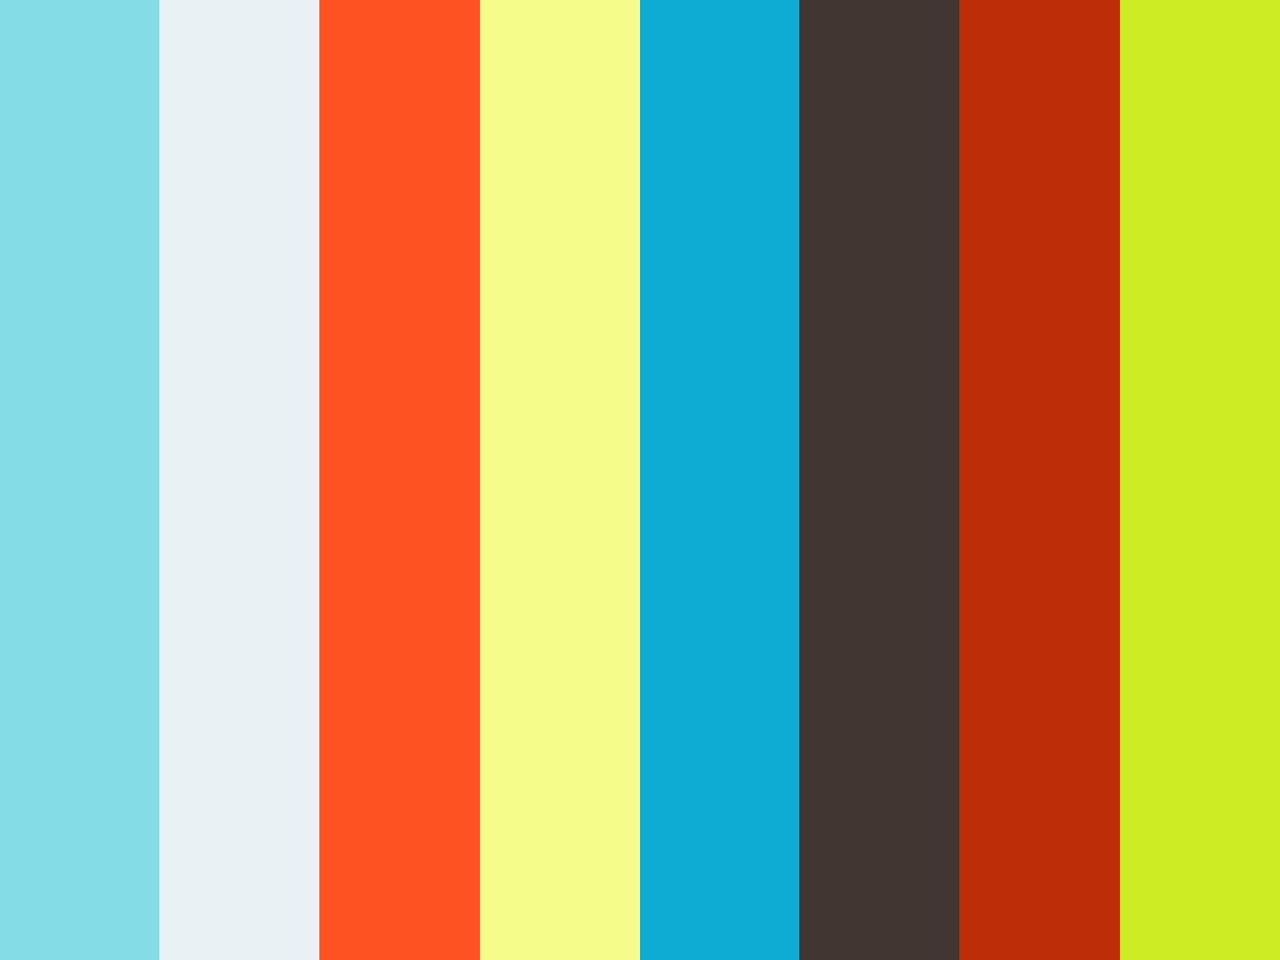 Kids in PNG